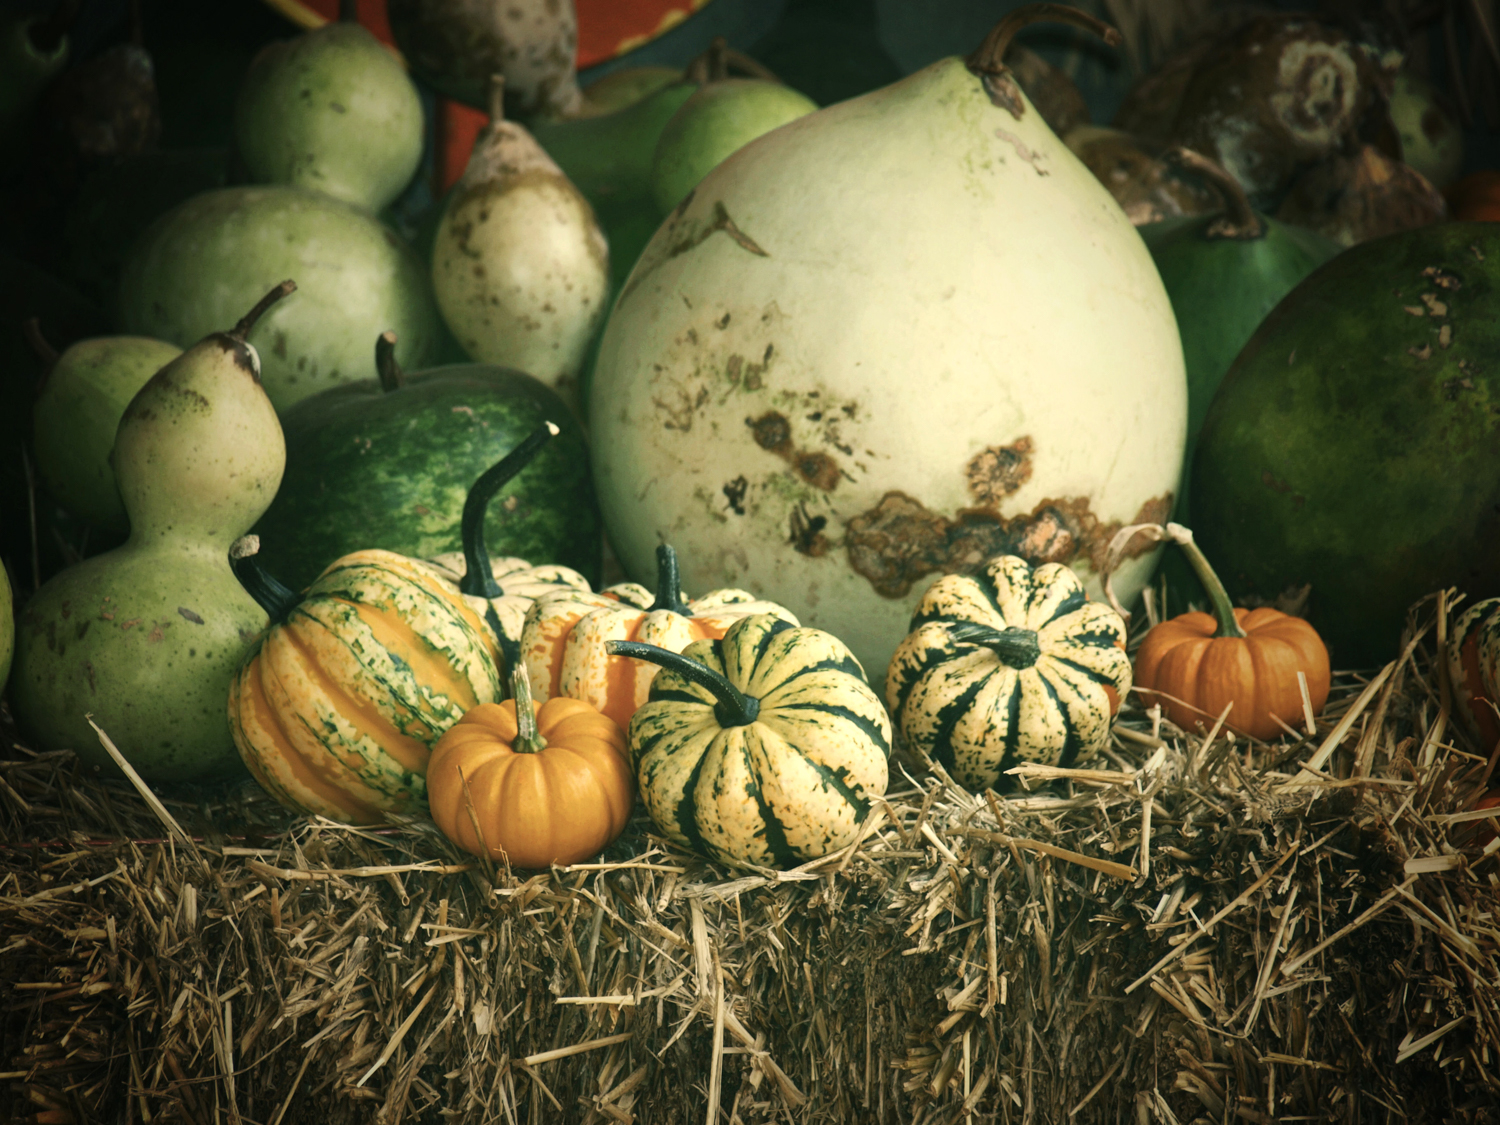 A plethora of gourds and pumpkins ring in Autumn at Ganyard Hill Farm in Durham, North Carolina.|© Christy Hydeck